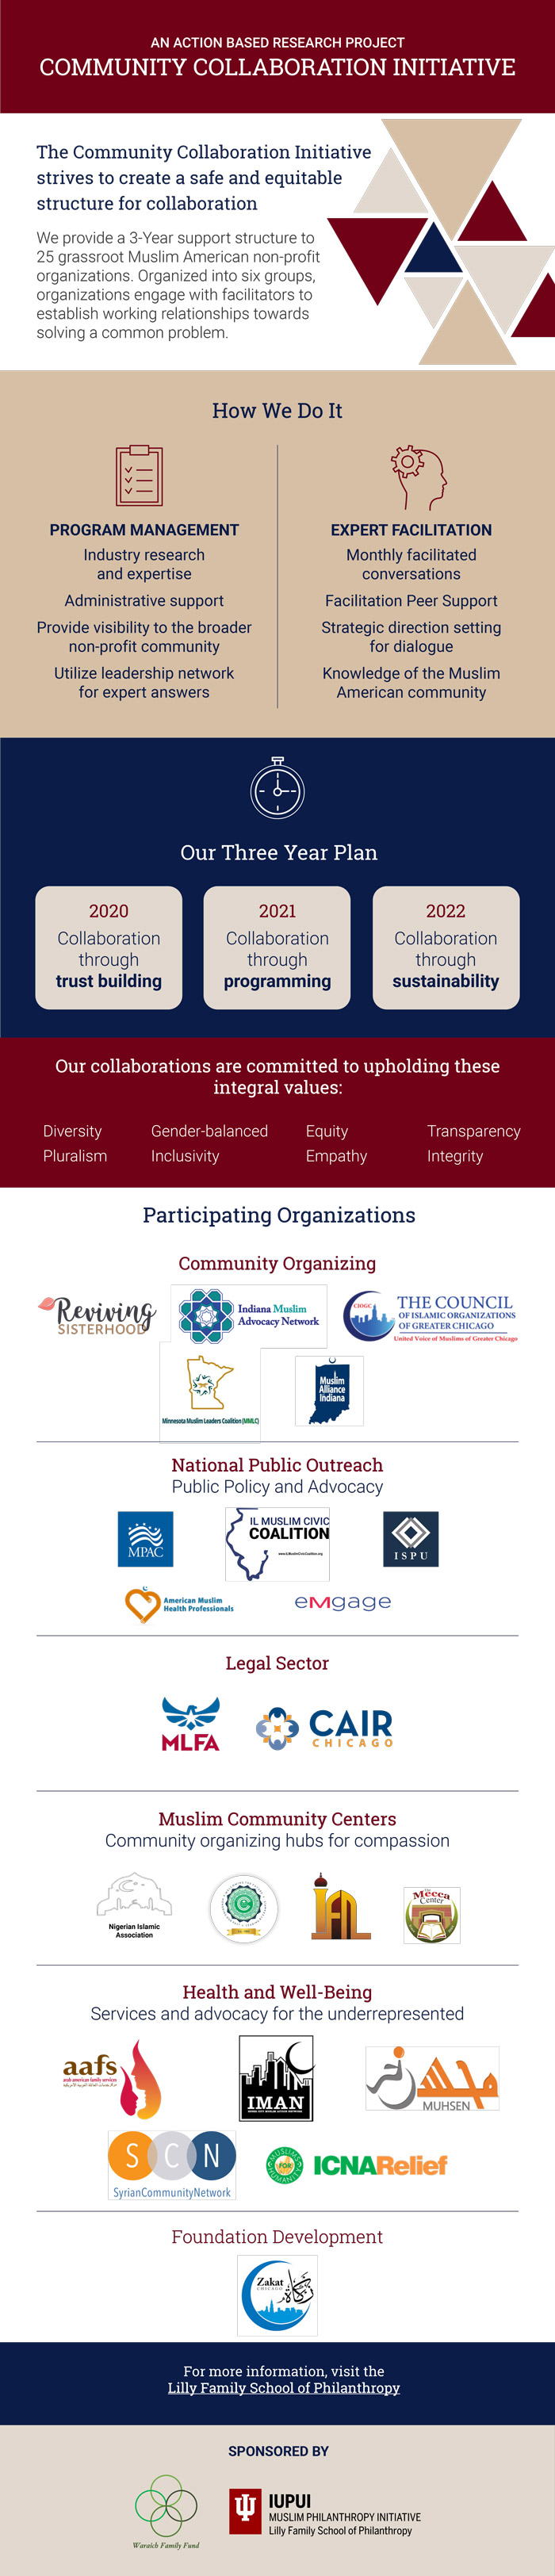 Community Collaboration Initiative infographic